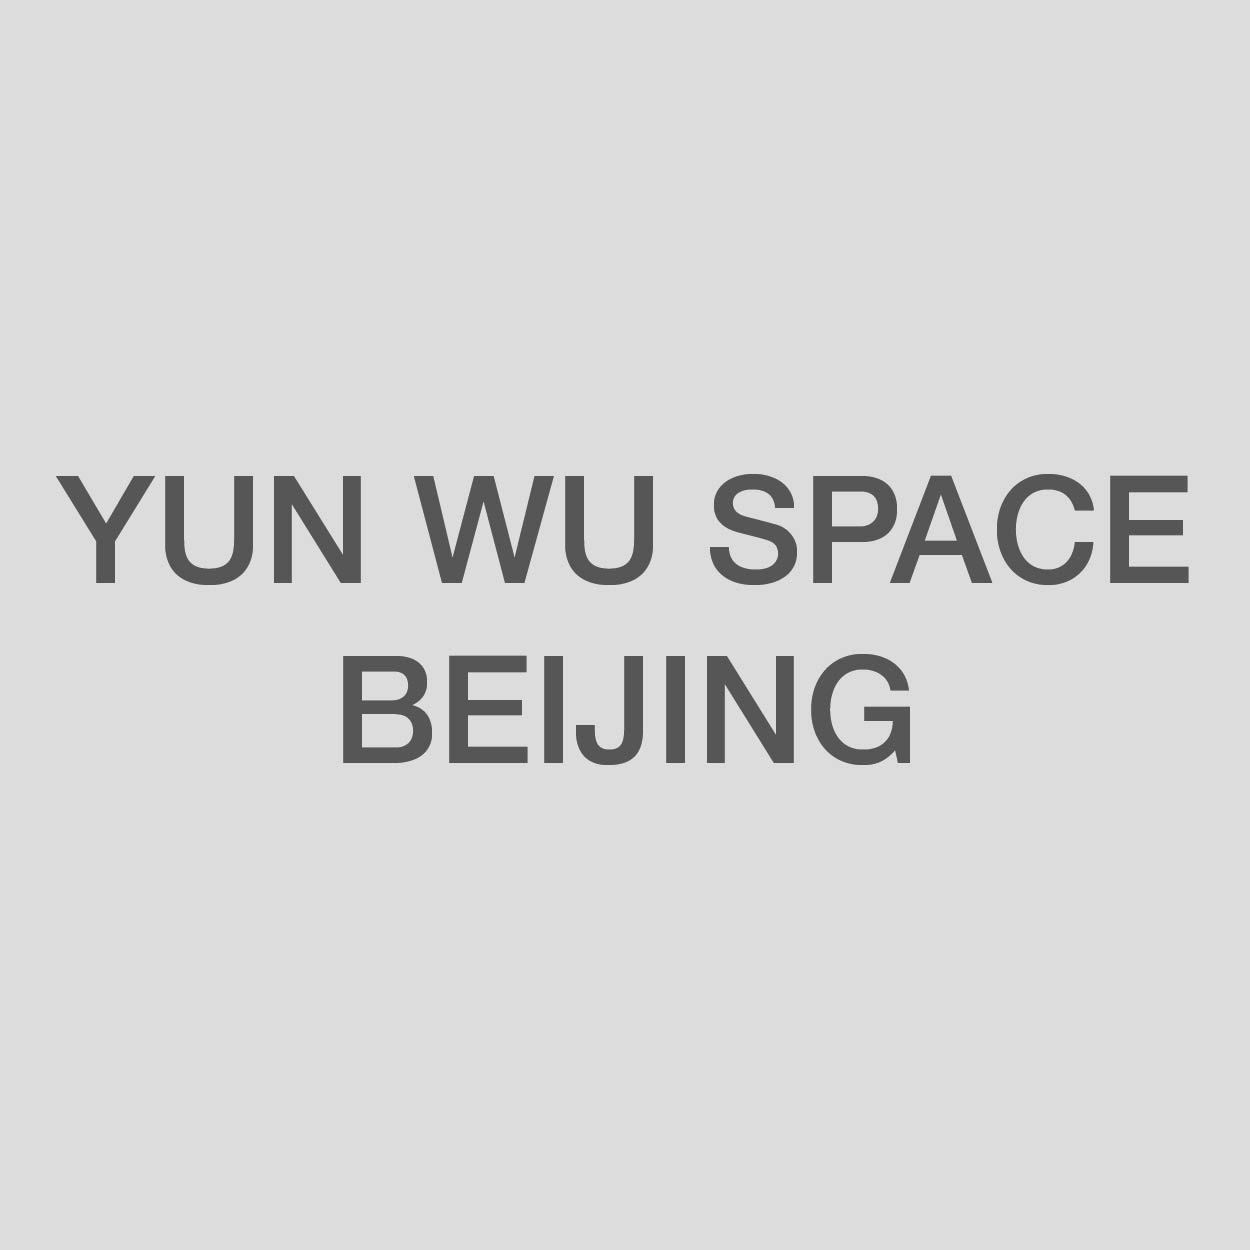 Yun Wu Space